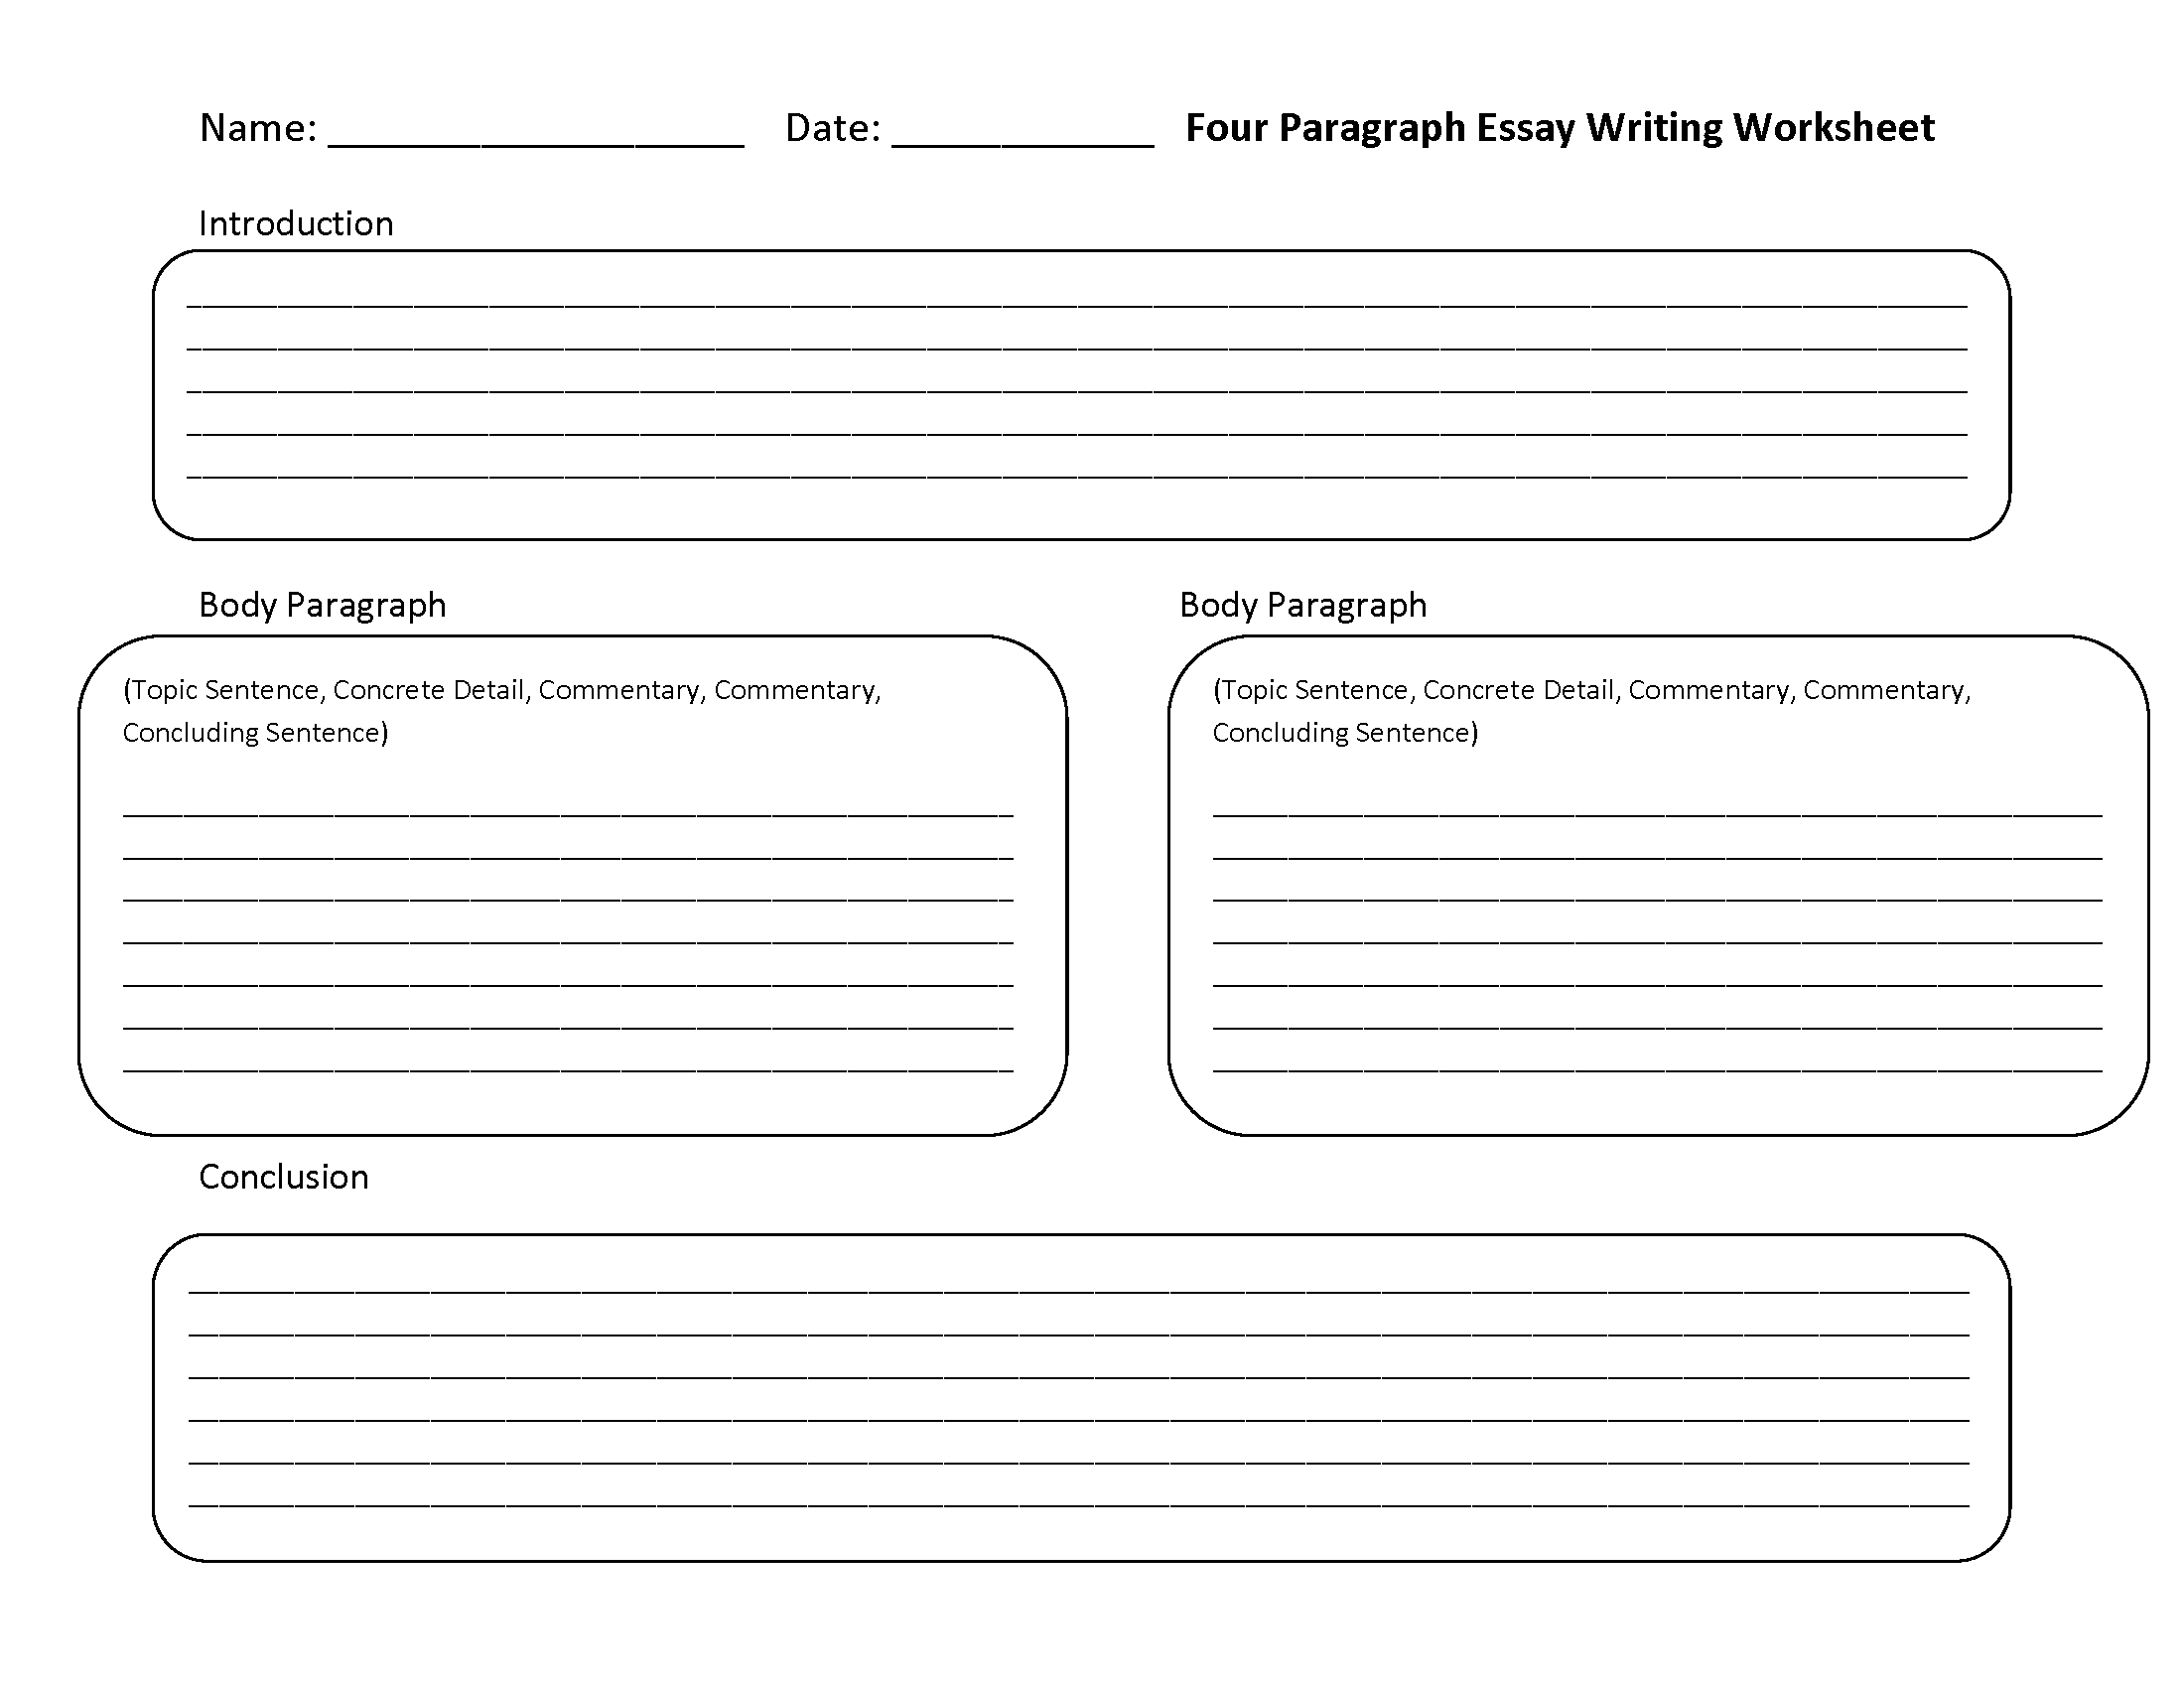 writing worksheets essay writing worksheets four paragraph essay writing worksheets